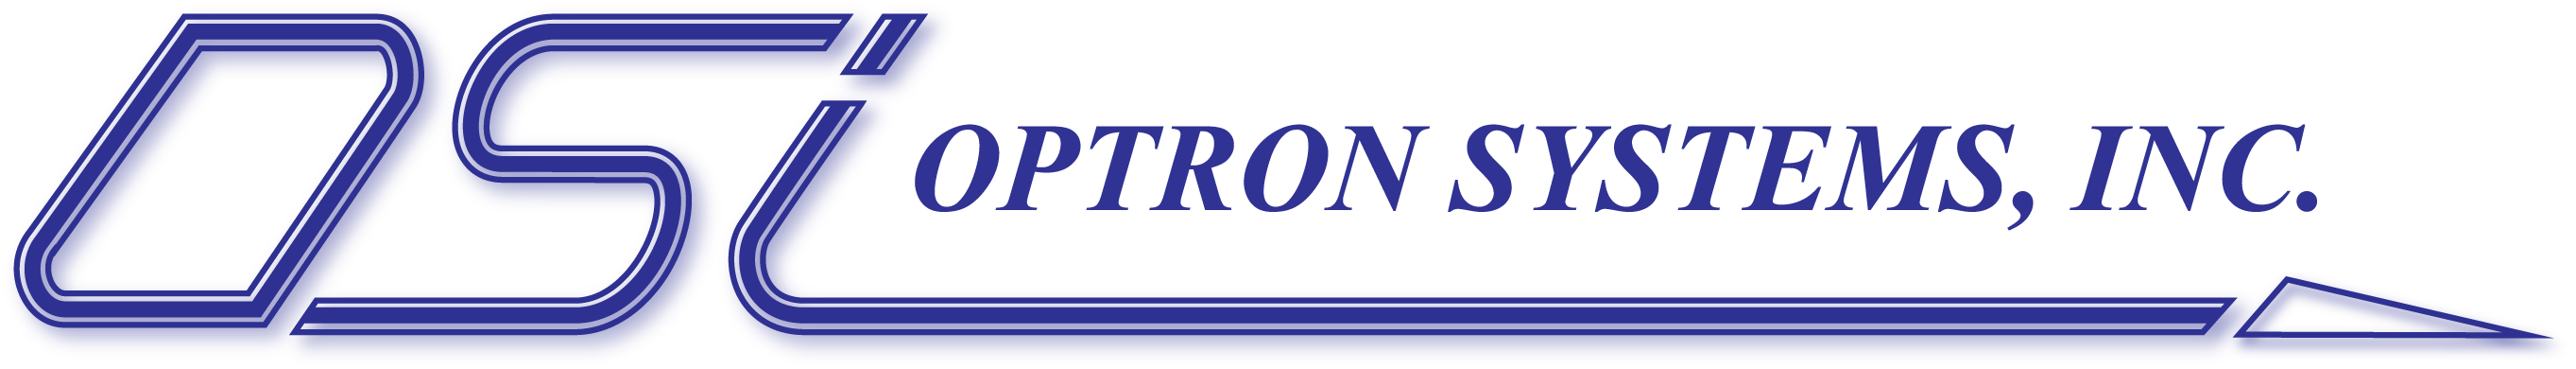 Optron Systems, Inc.